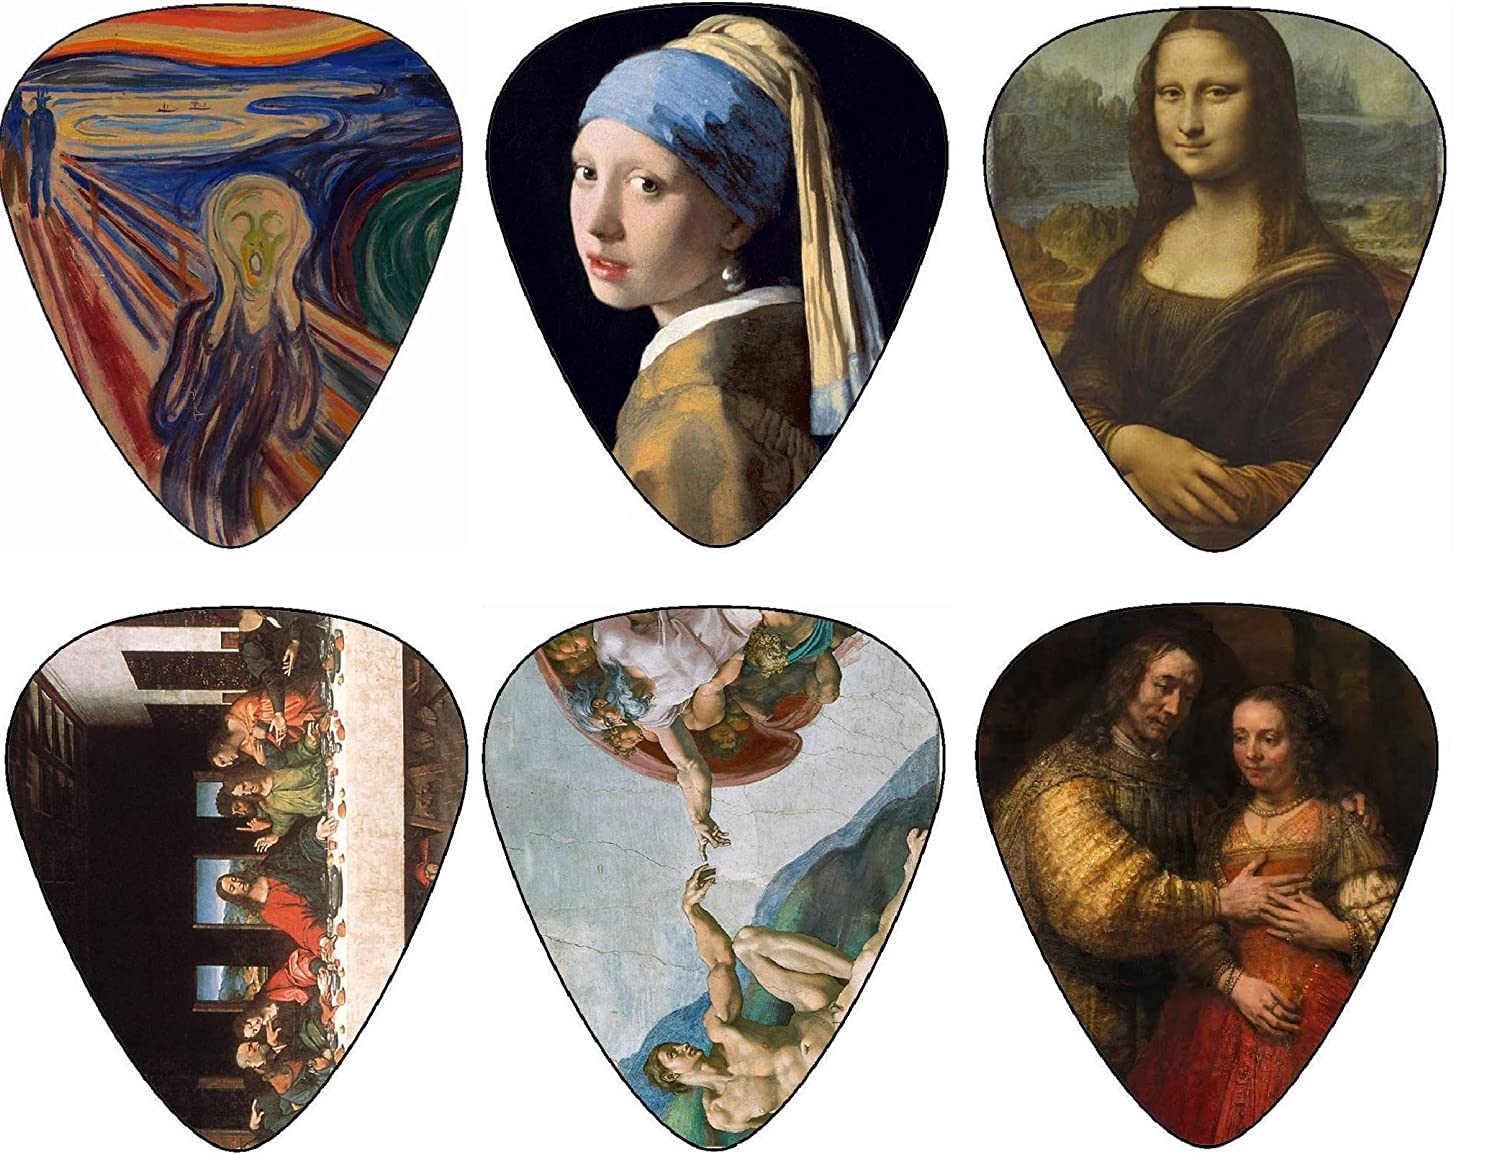 Guitar Picks, Cool Renaissance Art Medium 12 Pack Celluloid, Leather Keychain Pick Holder Included, Premium Gift Set. Have u Ever Played Your Electric, Acoustic or Bass Guitar With The Mona Lisa?